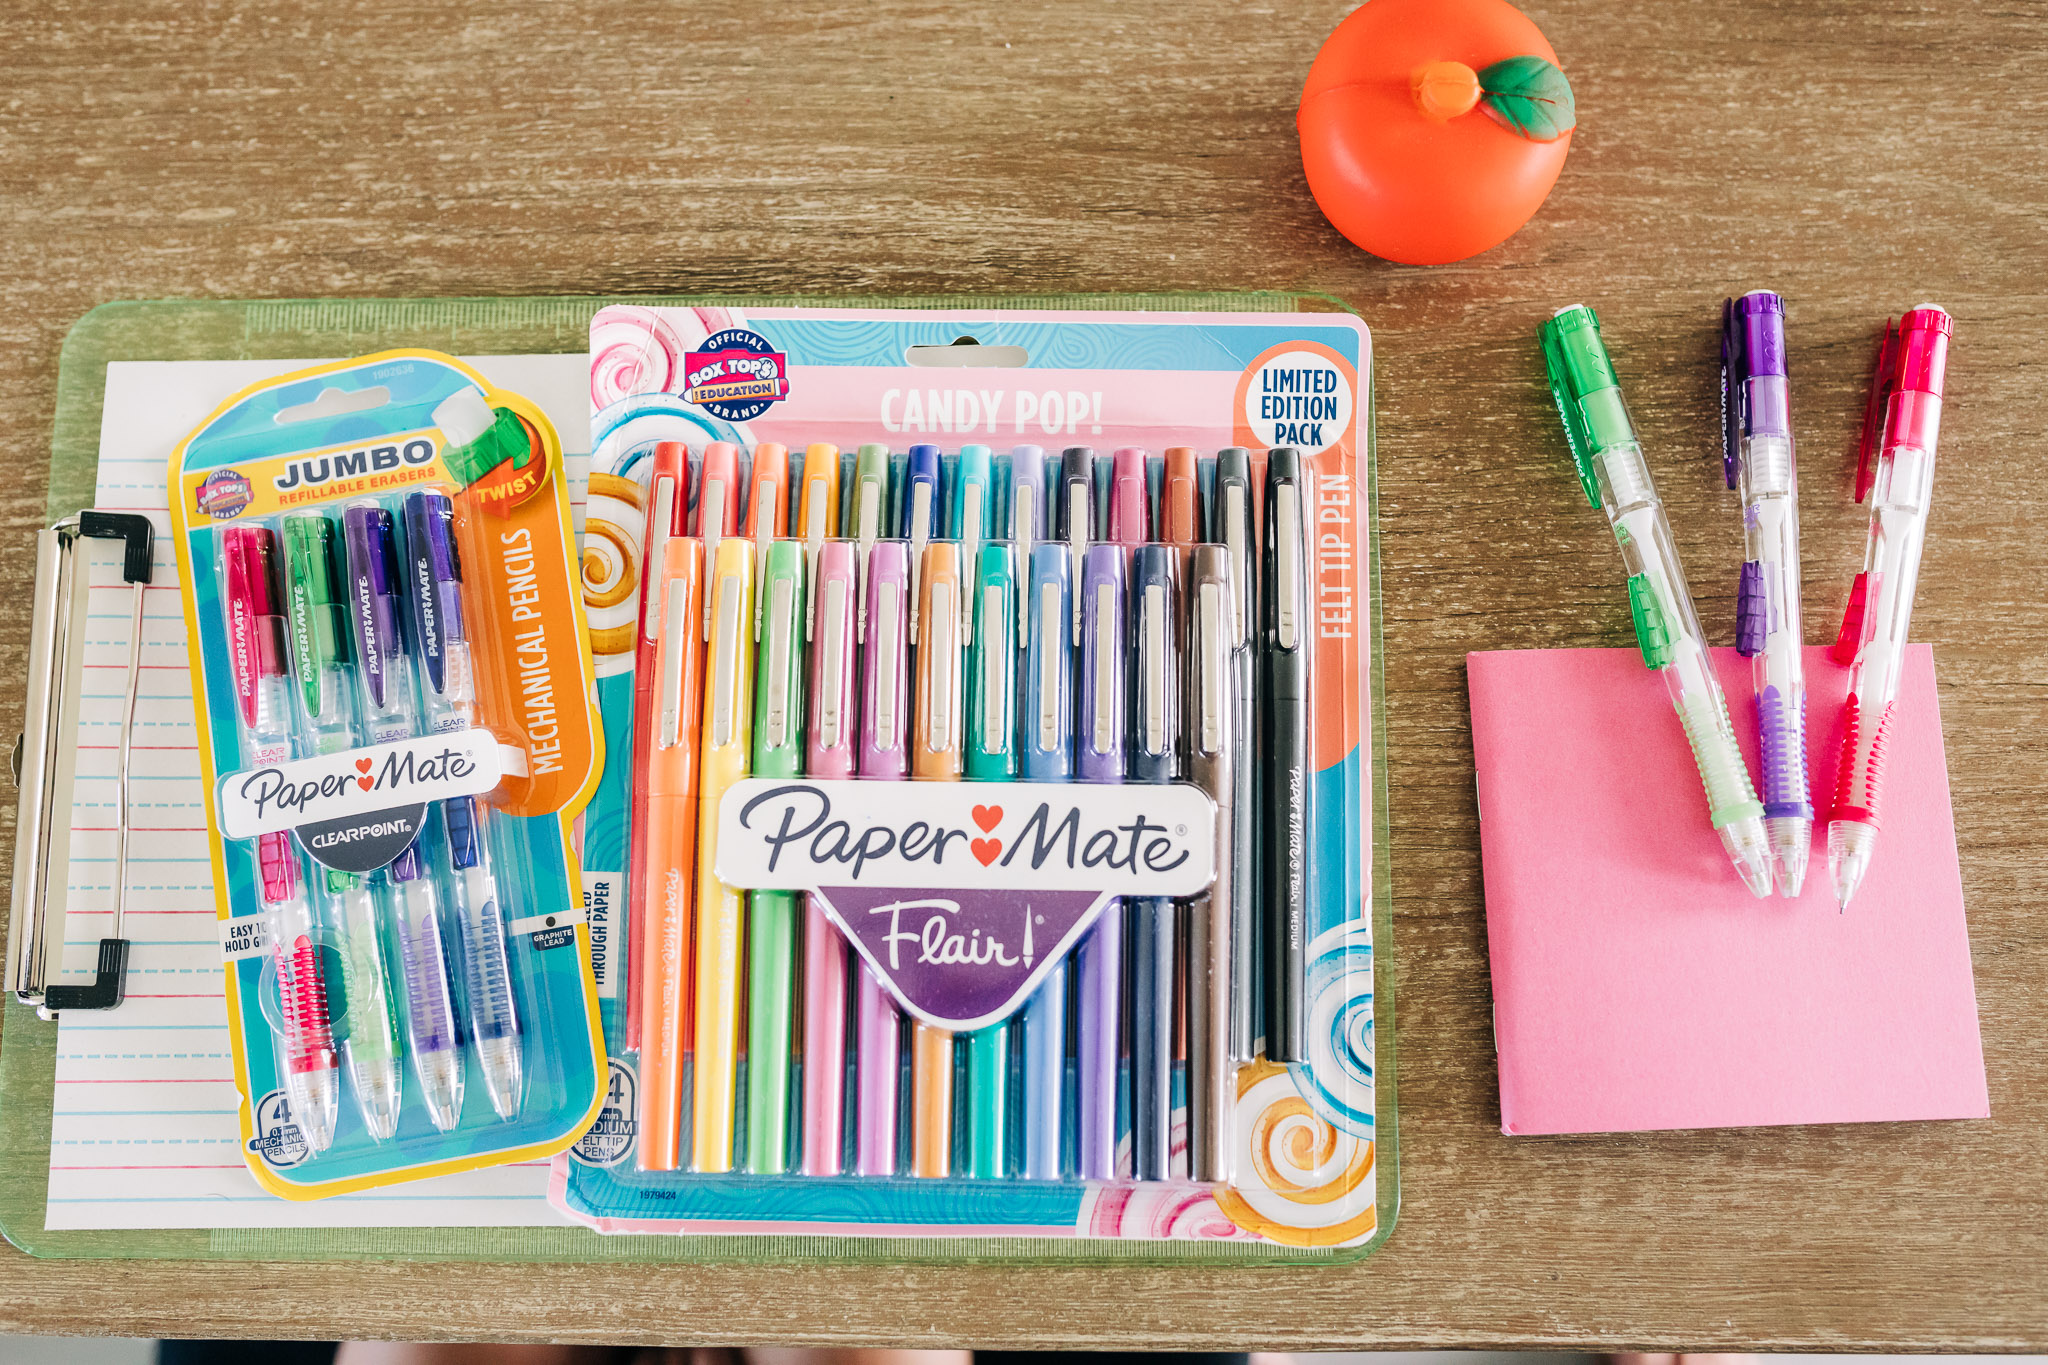 Back to school supplies, pens and pencils, PaperMate partners with Box Tops for Education #ad #PaperMatePledge